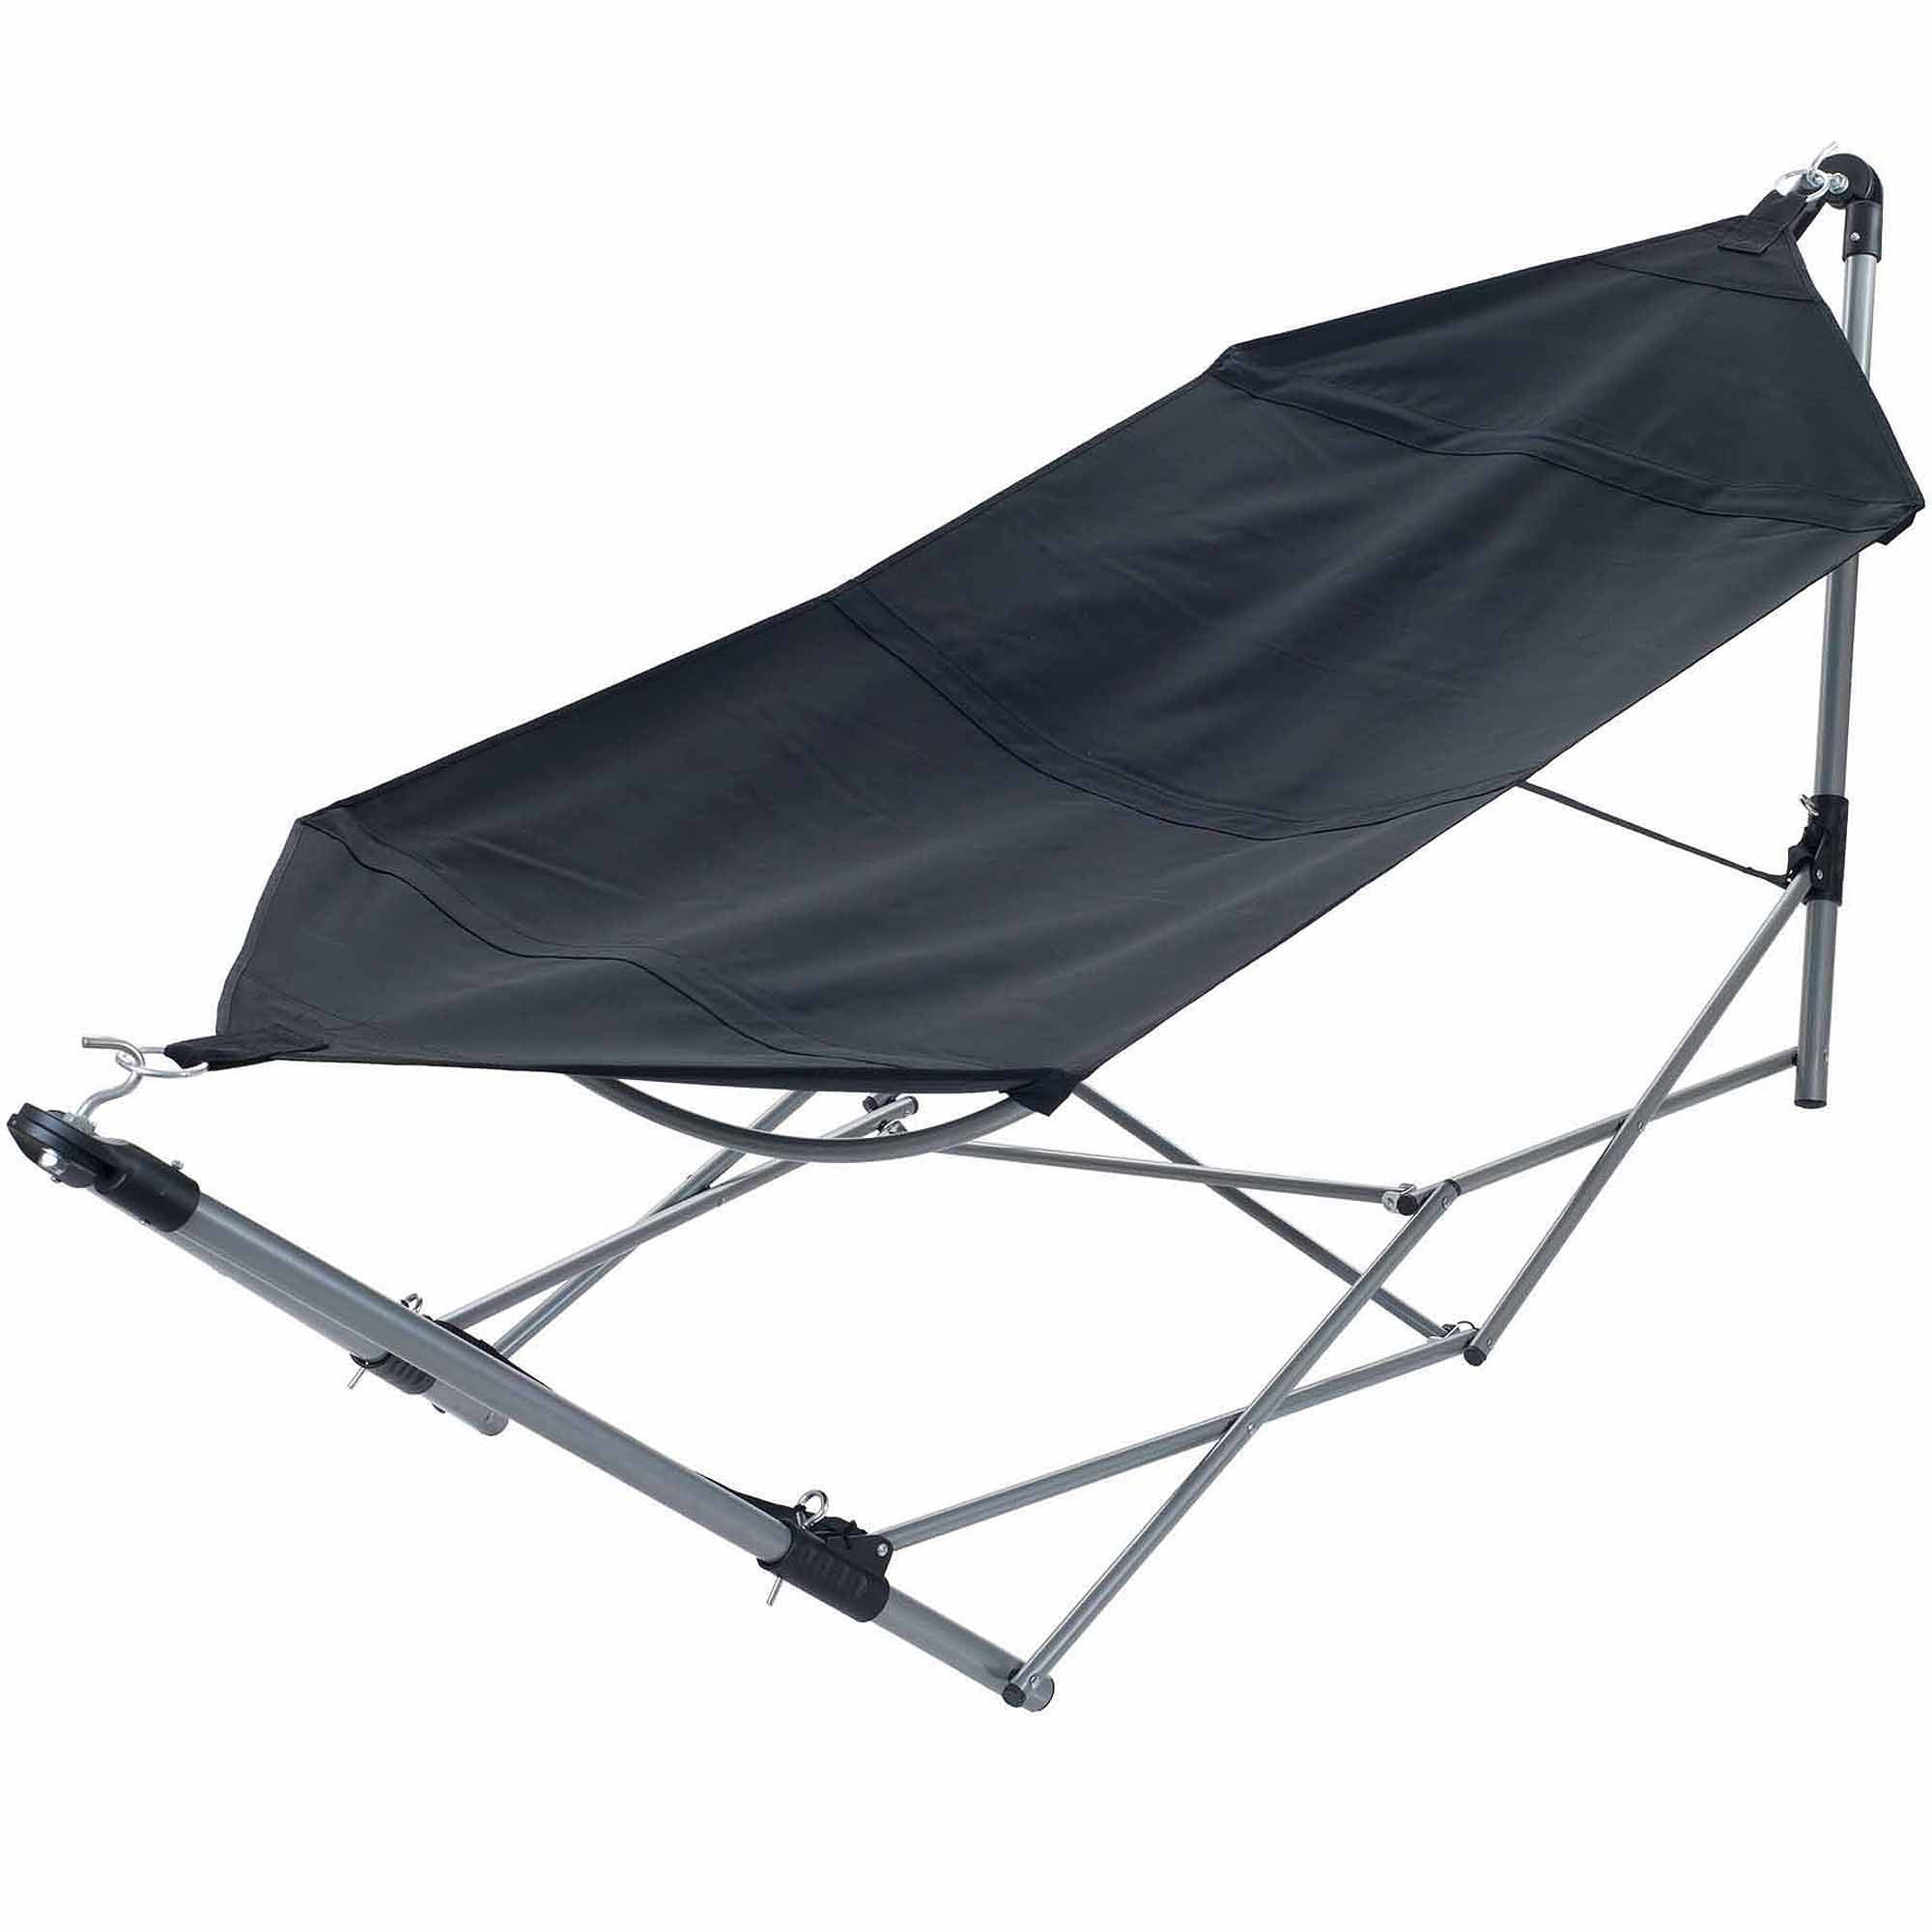 stalwart portable hammock with frame stand and carrying bag walmartcom